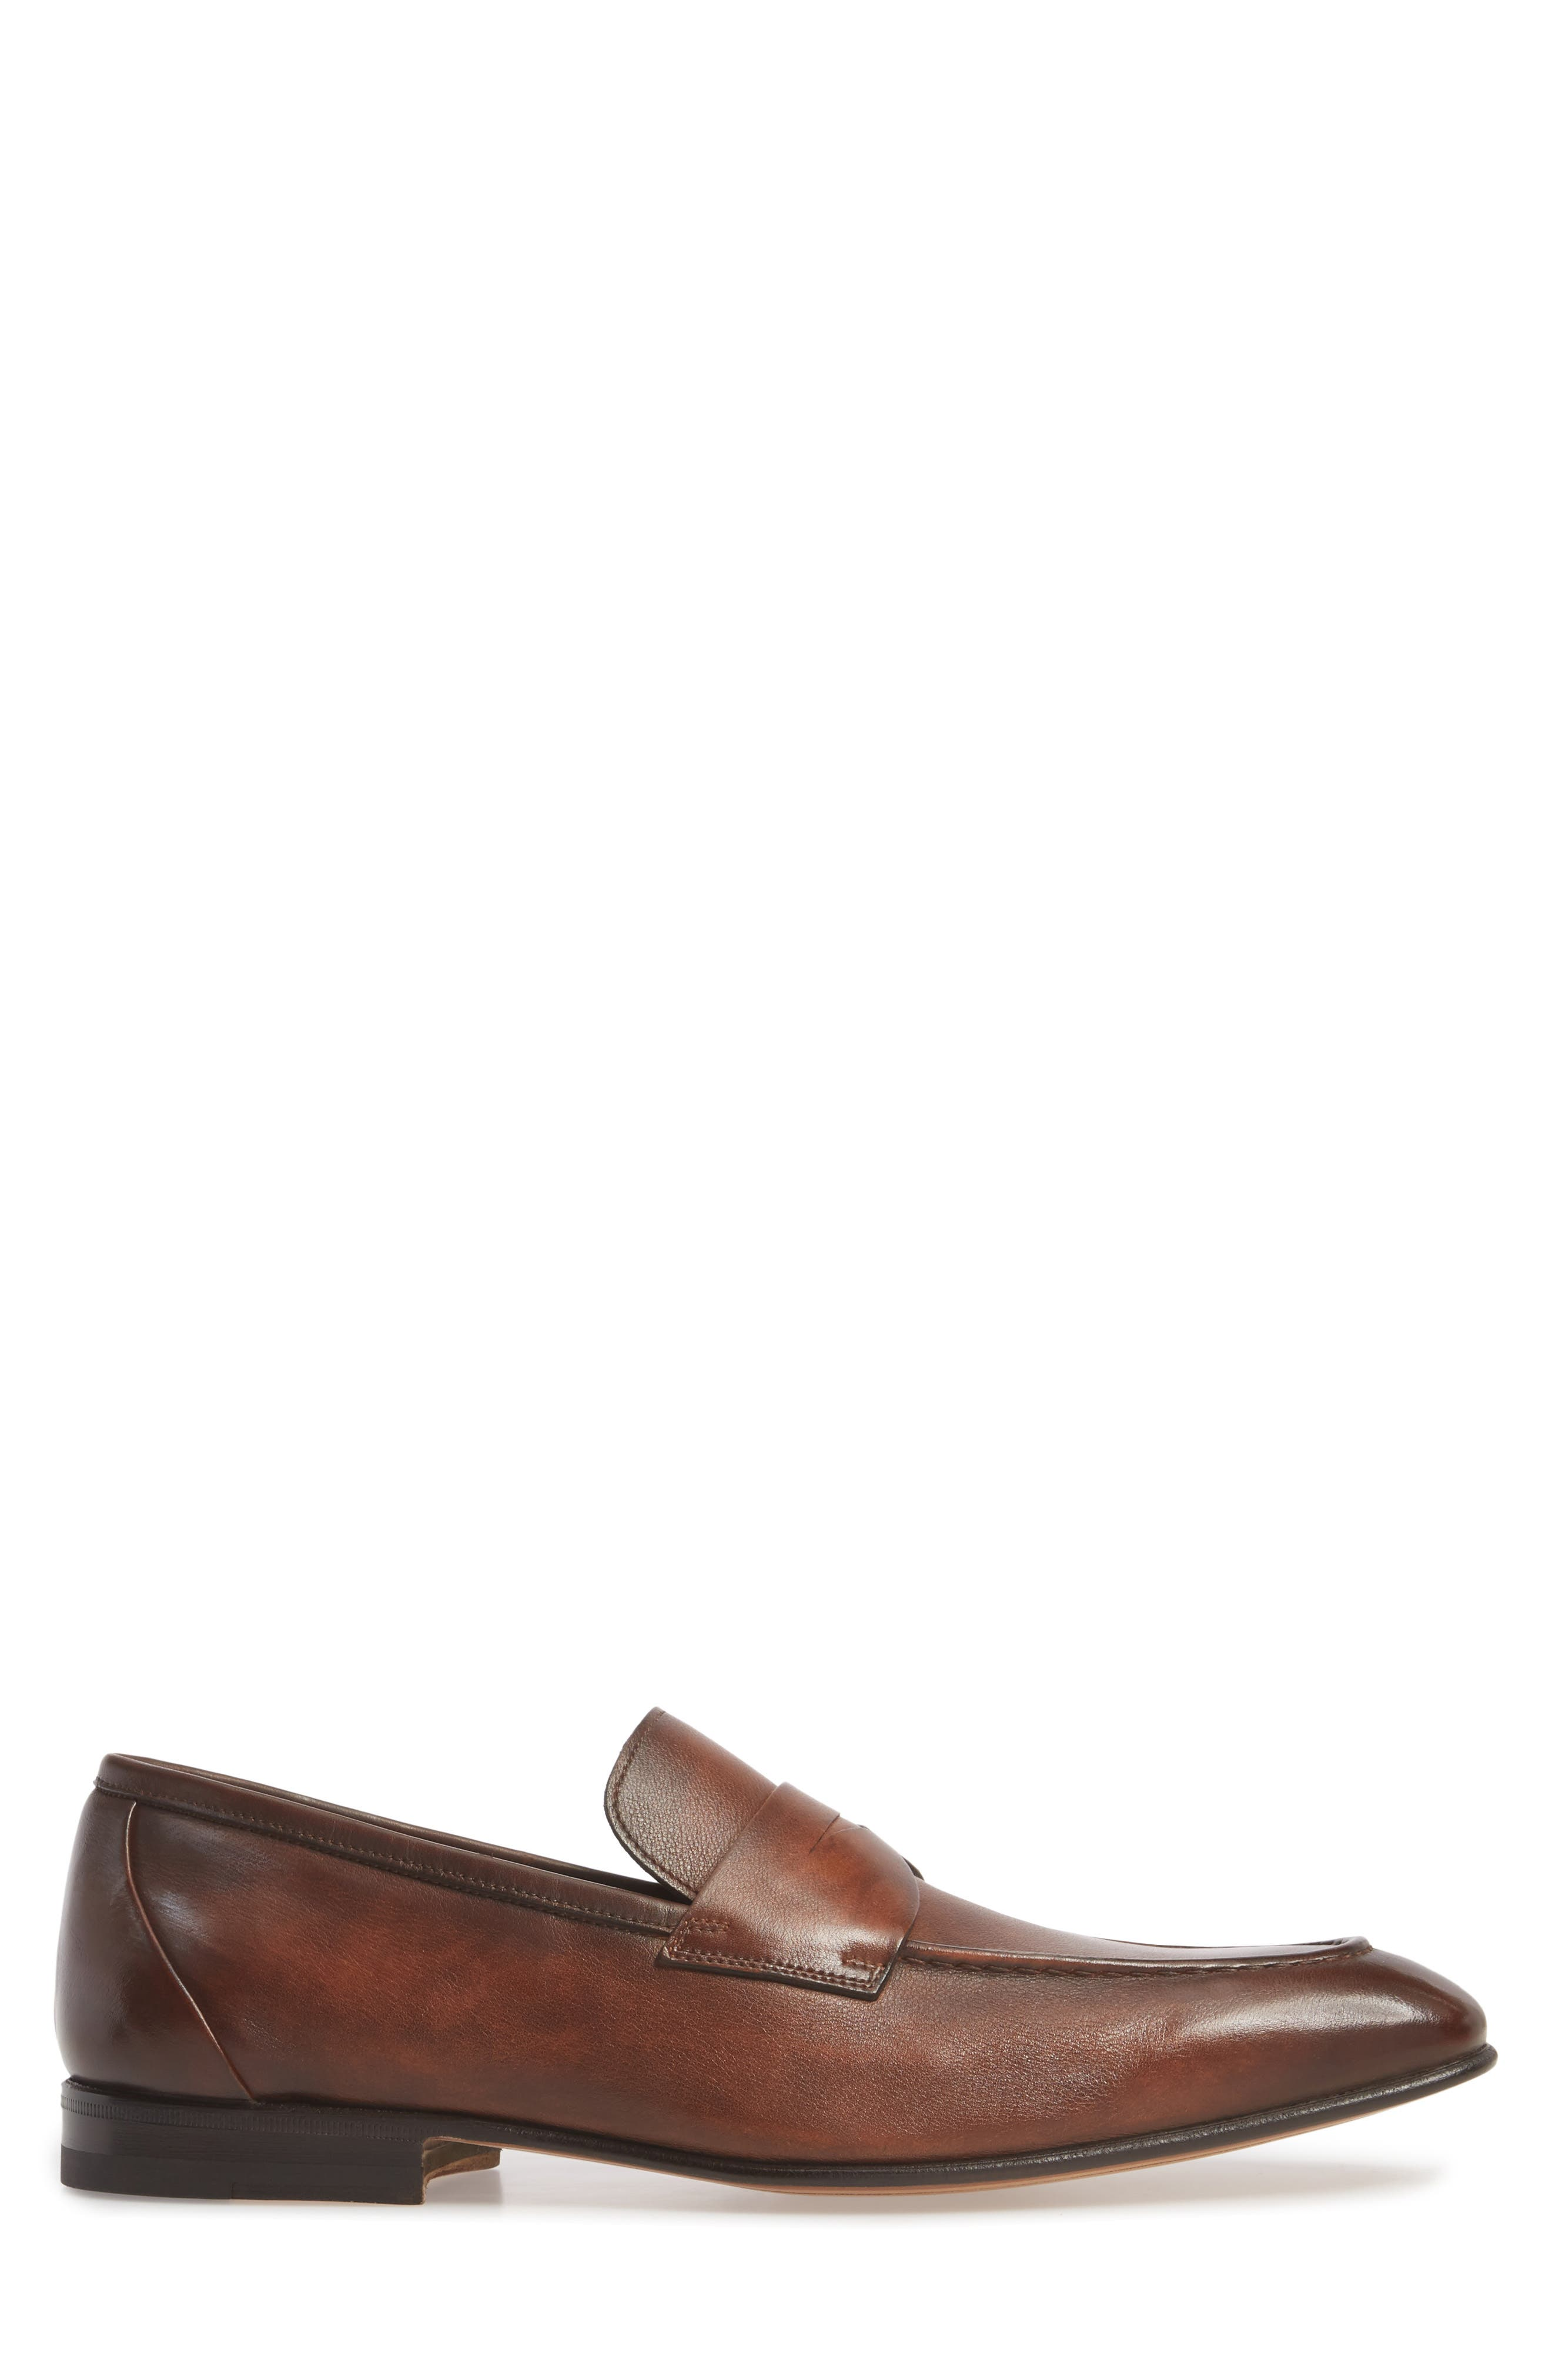 Gannon Penny Loafer,                             Alternate thumbnail 3, color,                             TAN